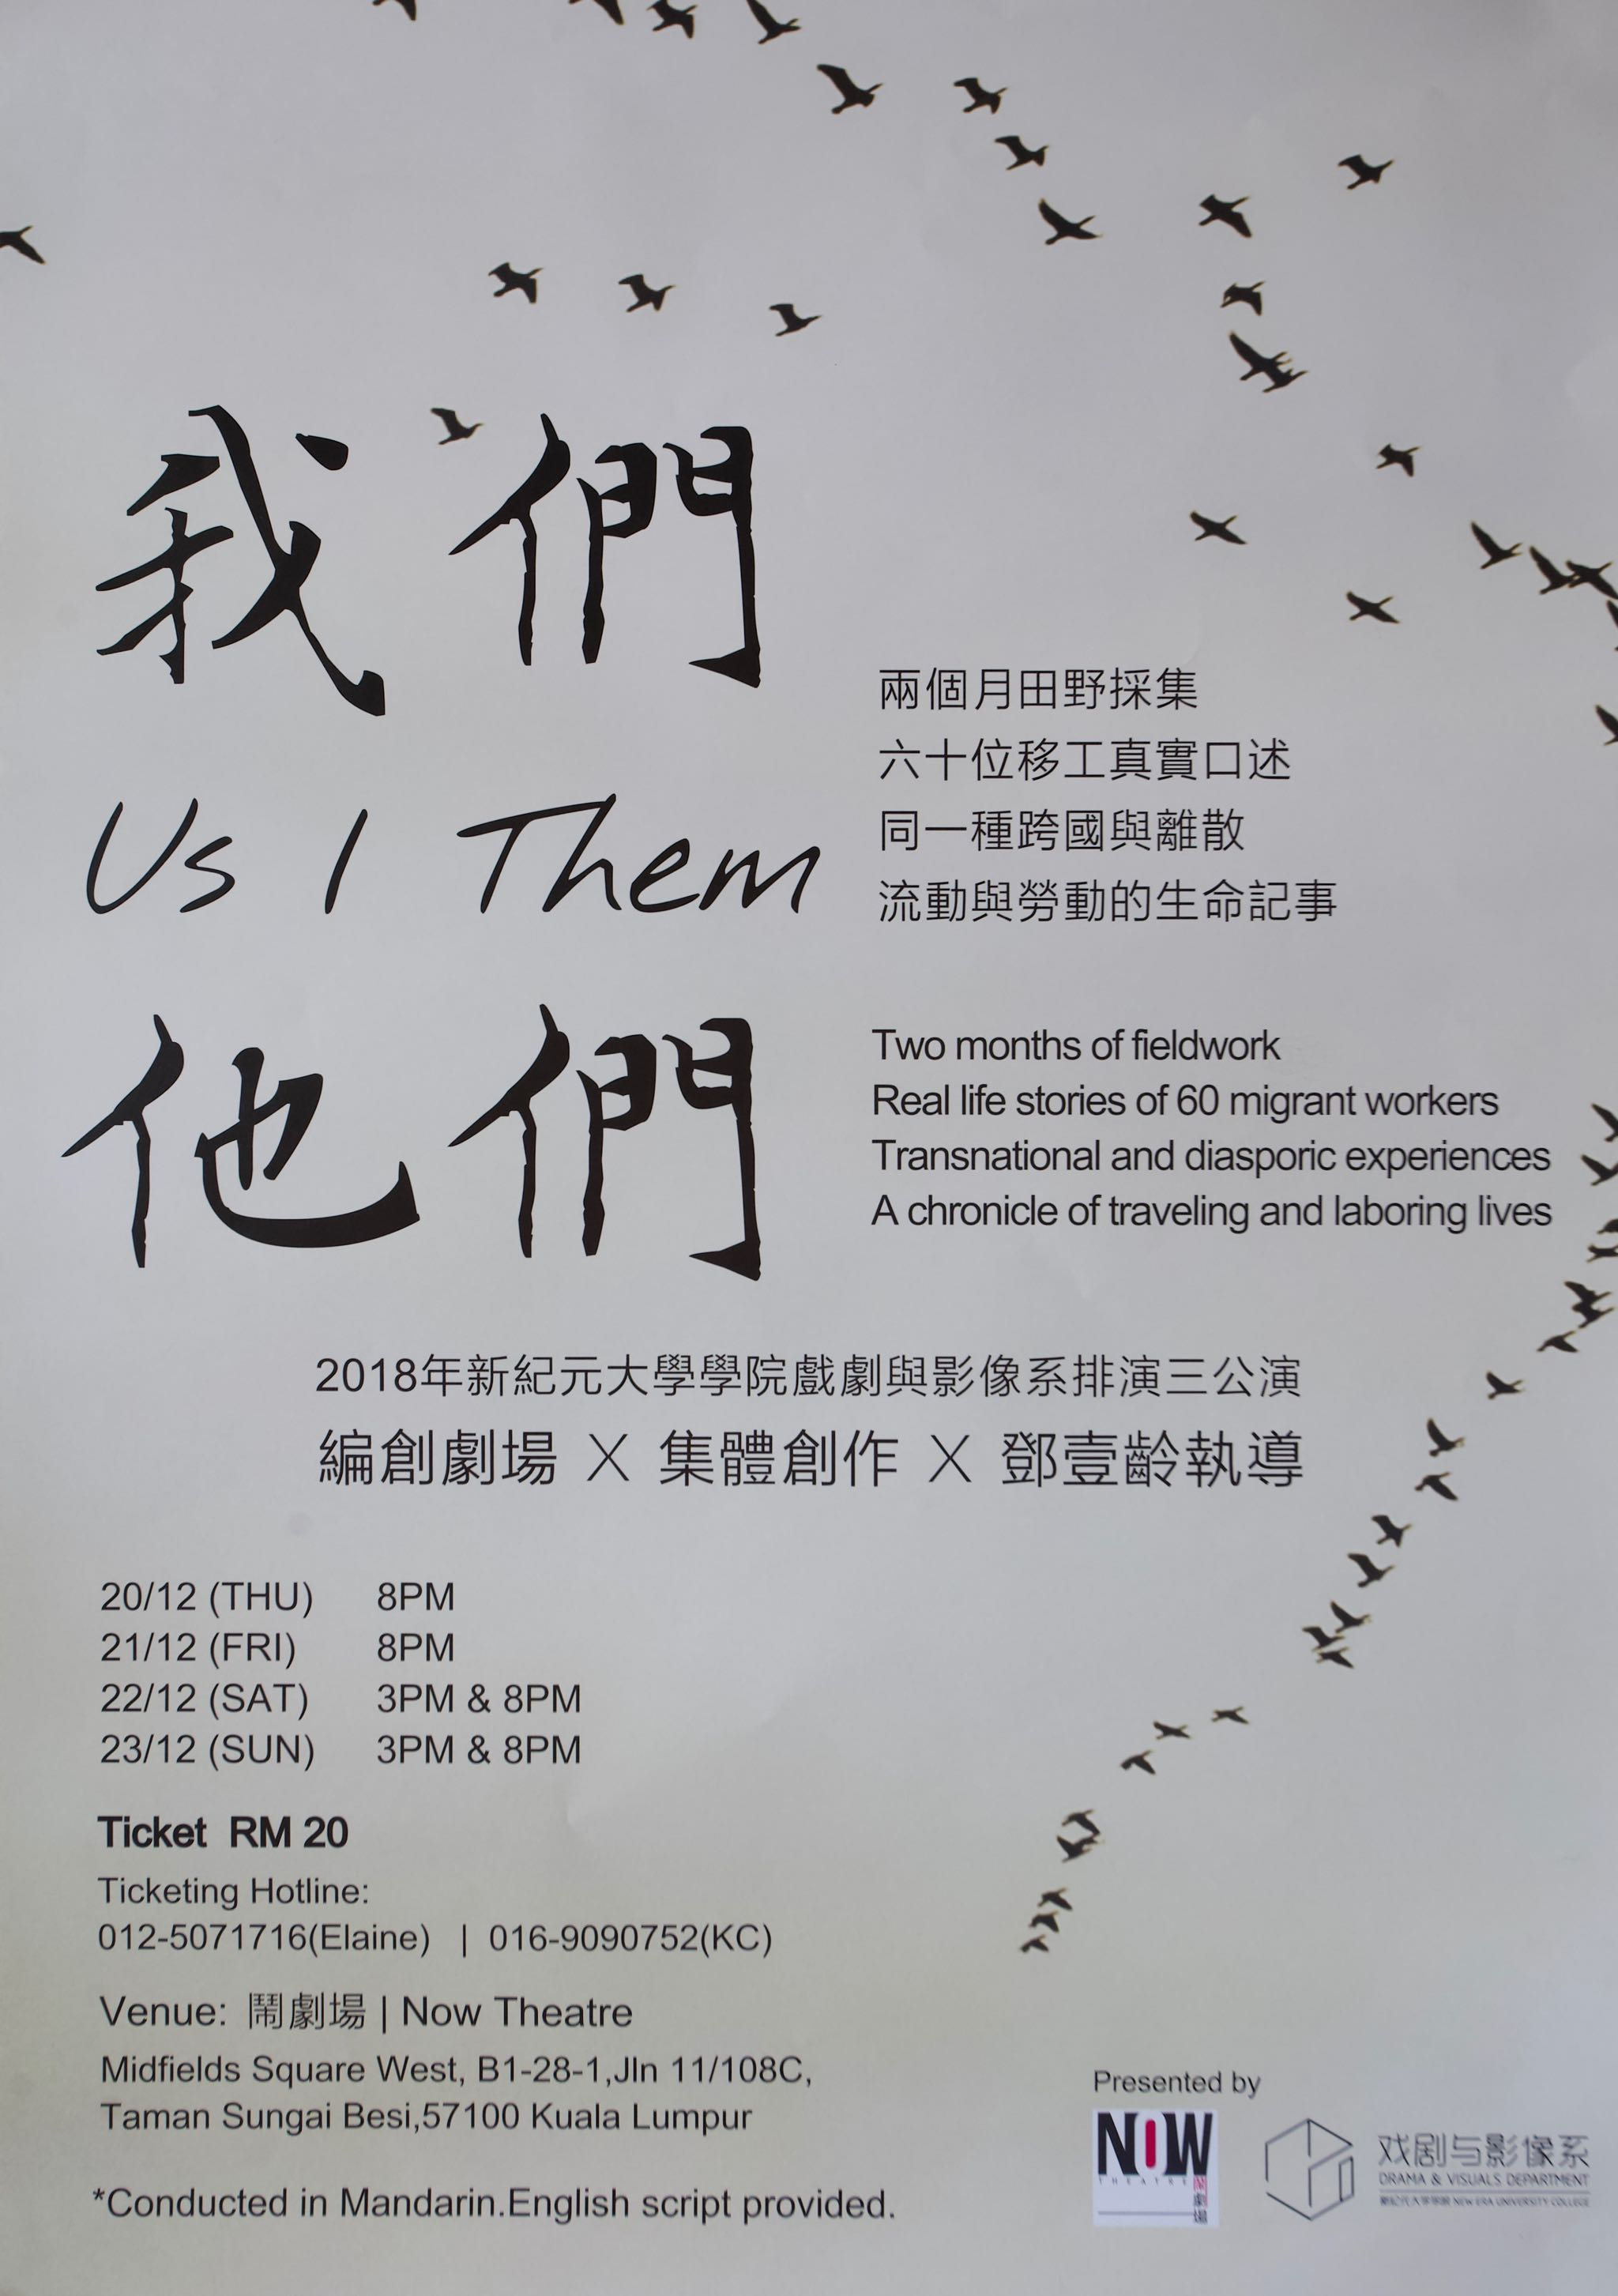 2018 Us I Them Poster